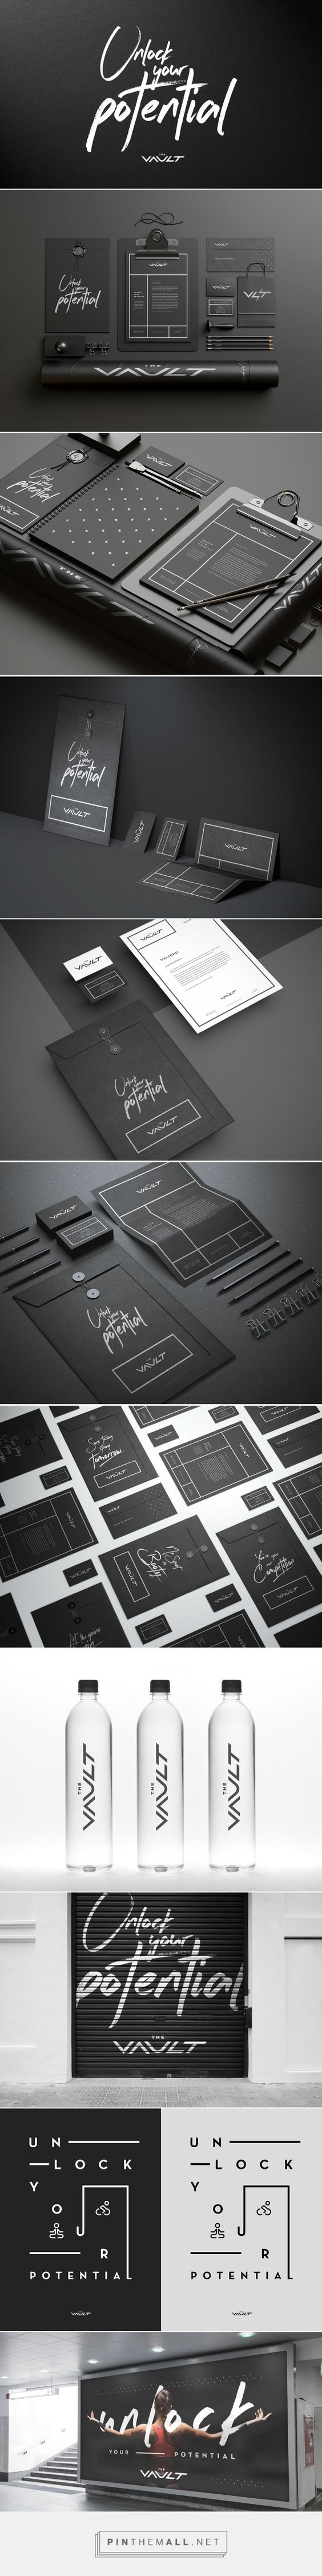 The Vault Branding on Behance                                                                                                                                                                                 More